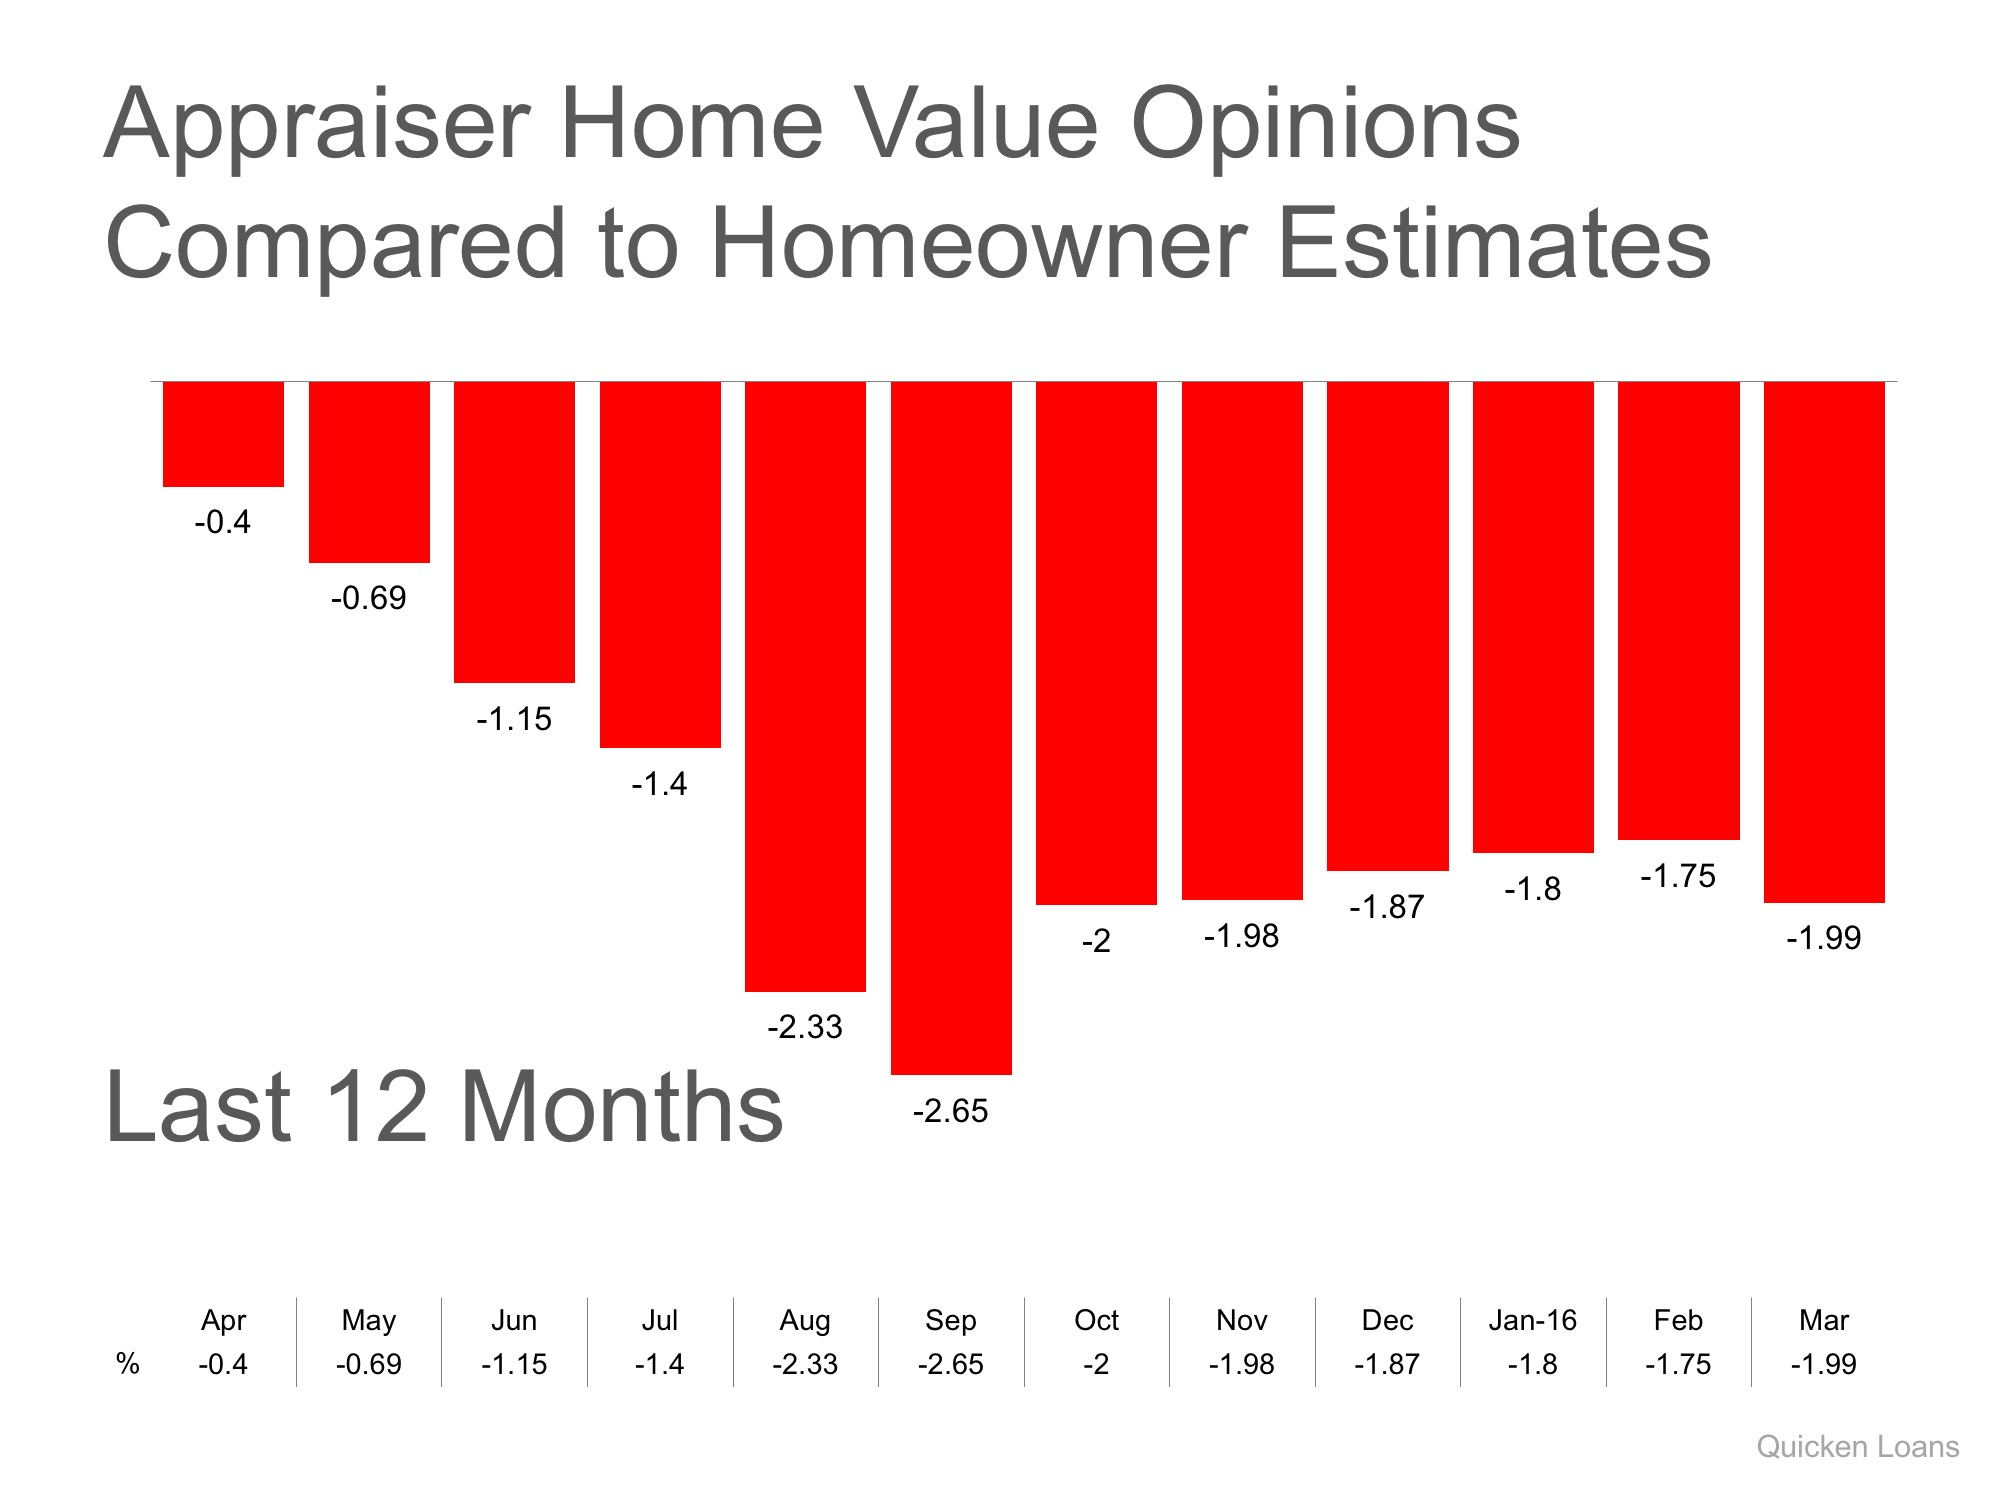 appraiser home value compared to homeowner estimates